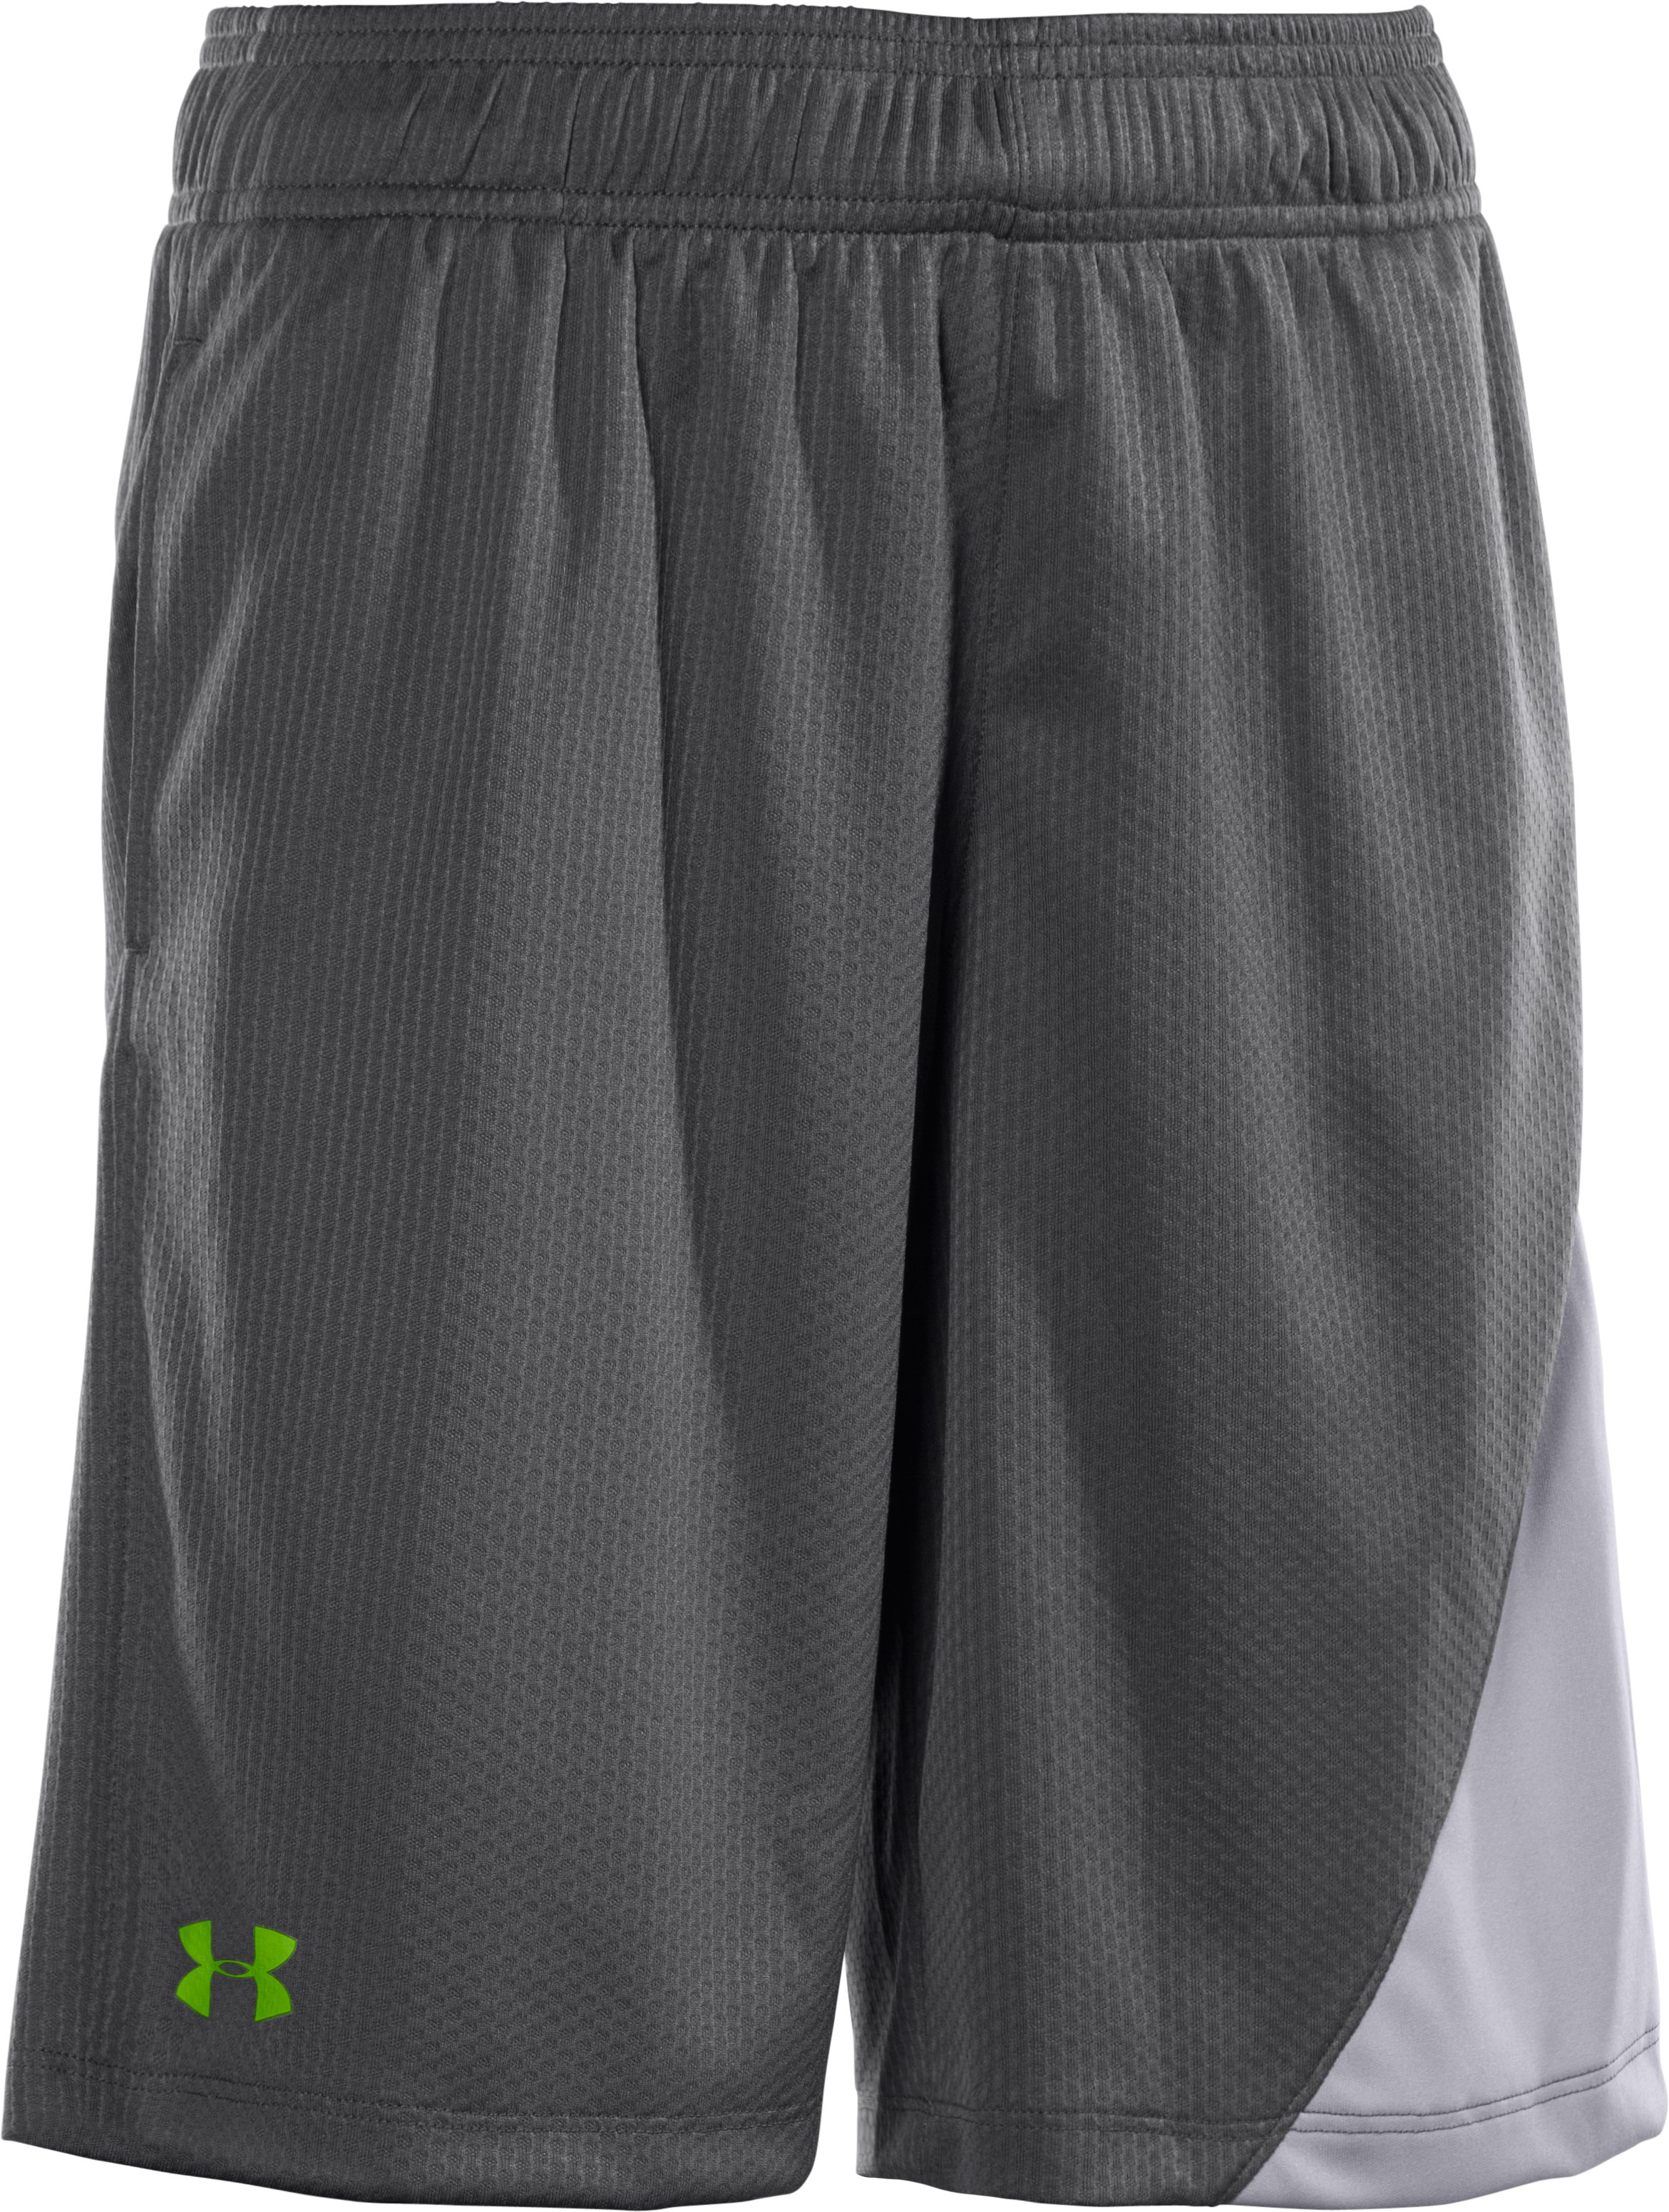 Boys' UA Influencer Training Shorts, Graphite, zoomed image